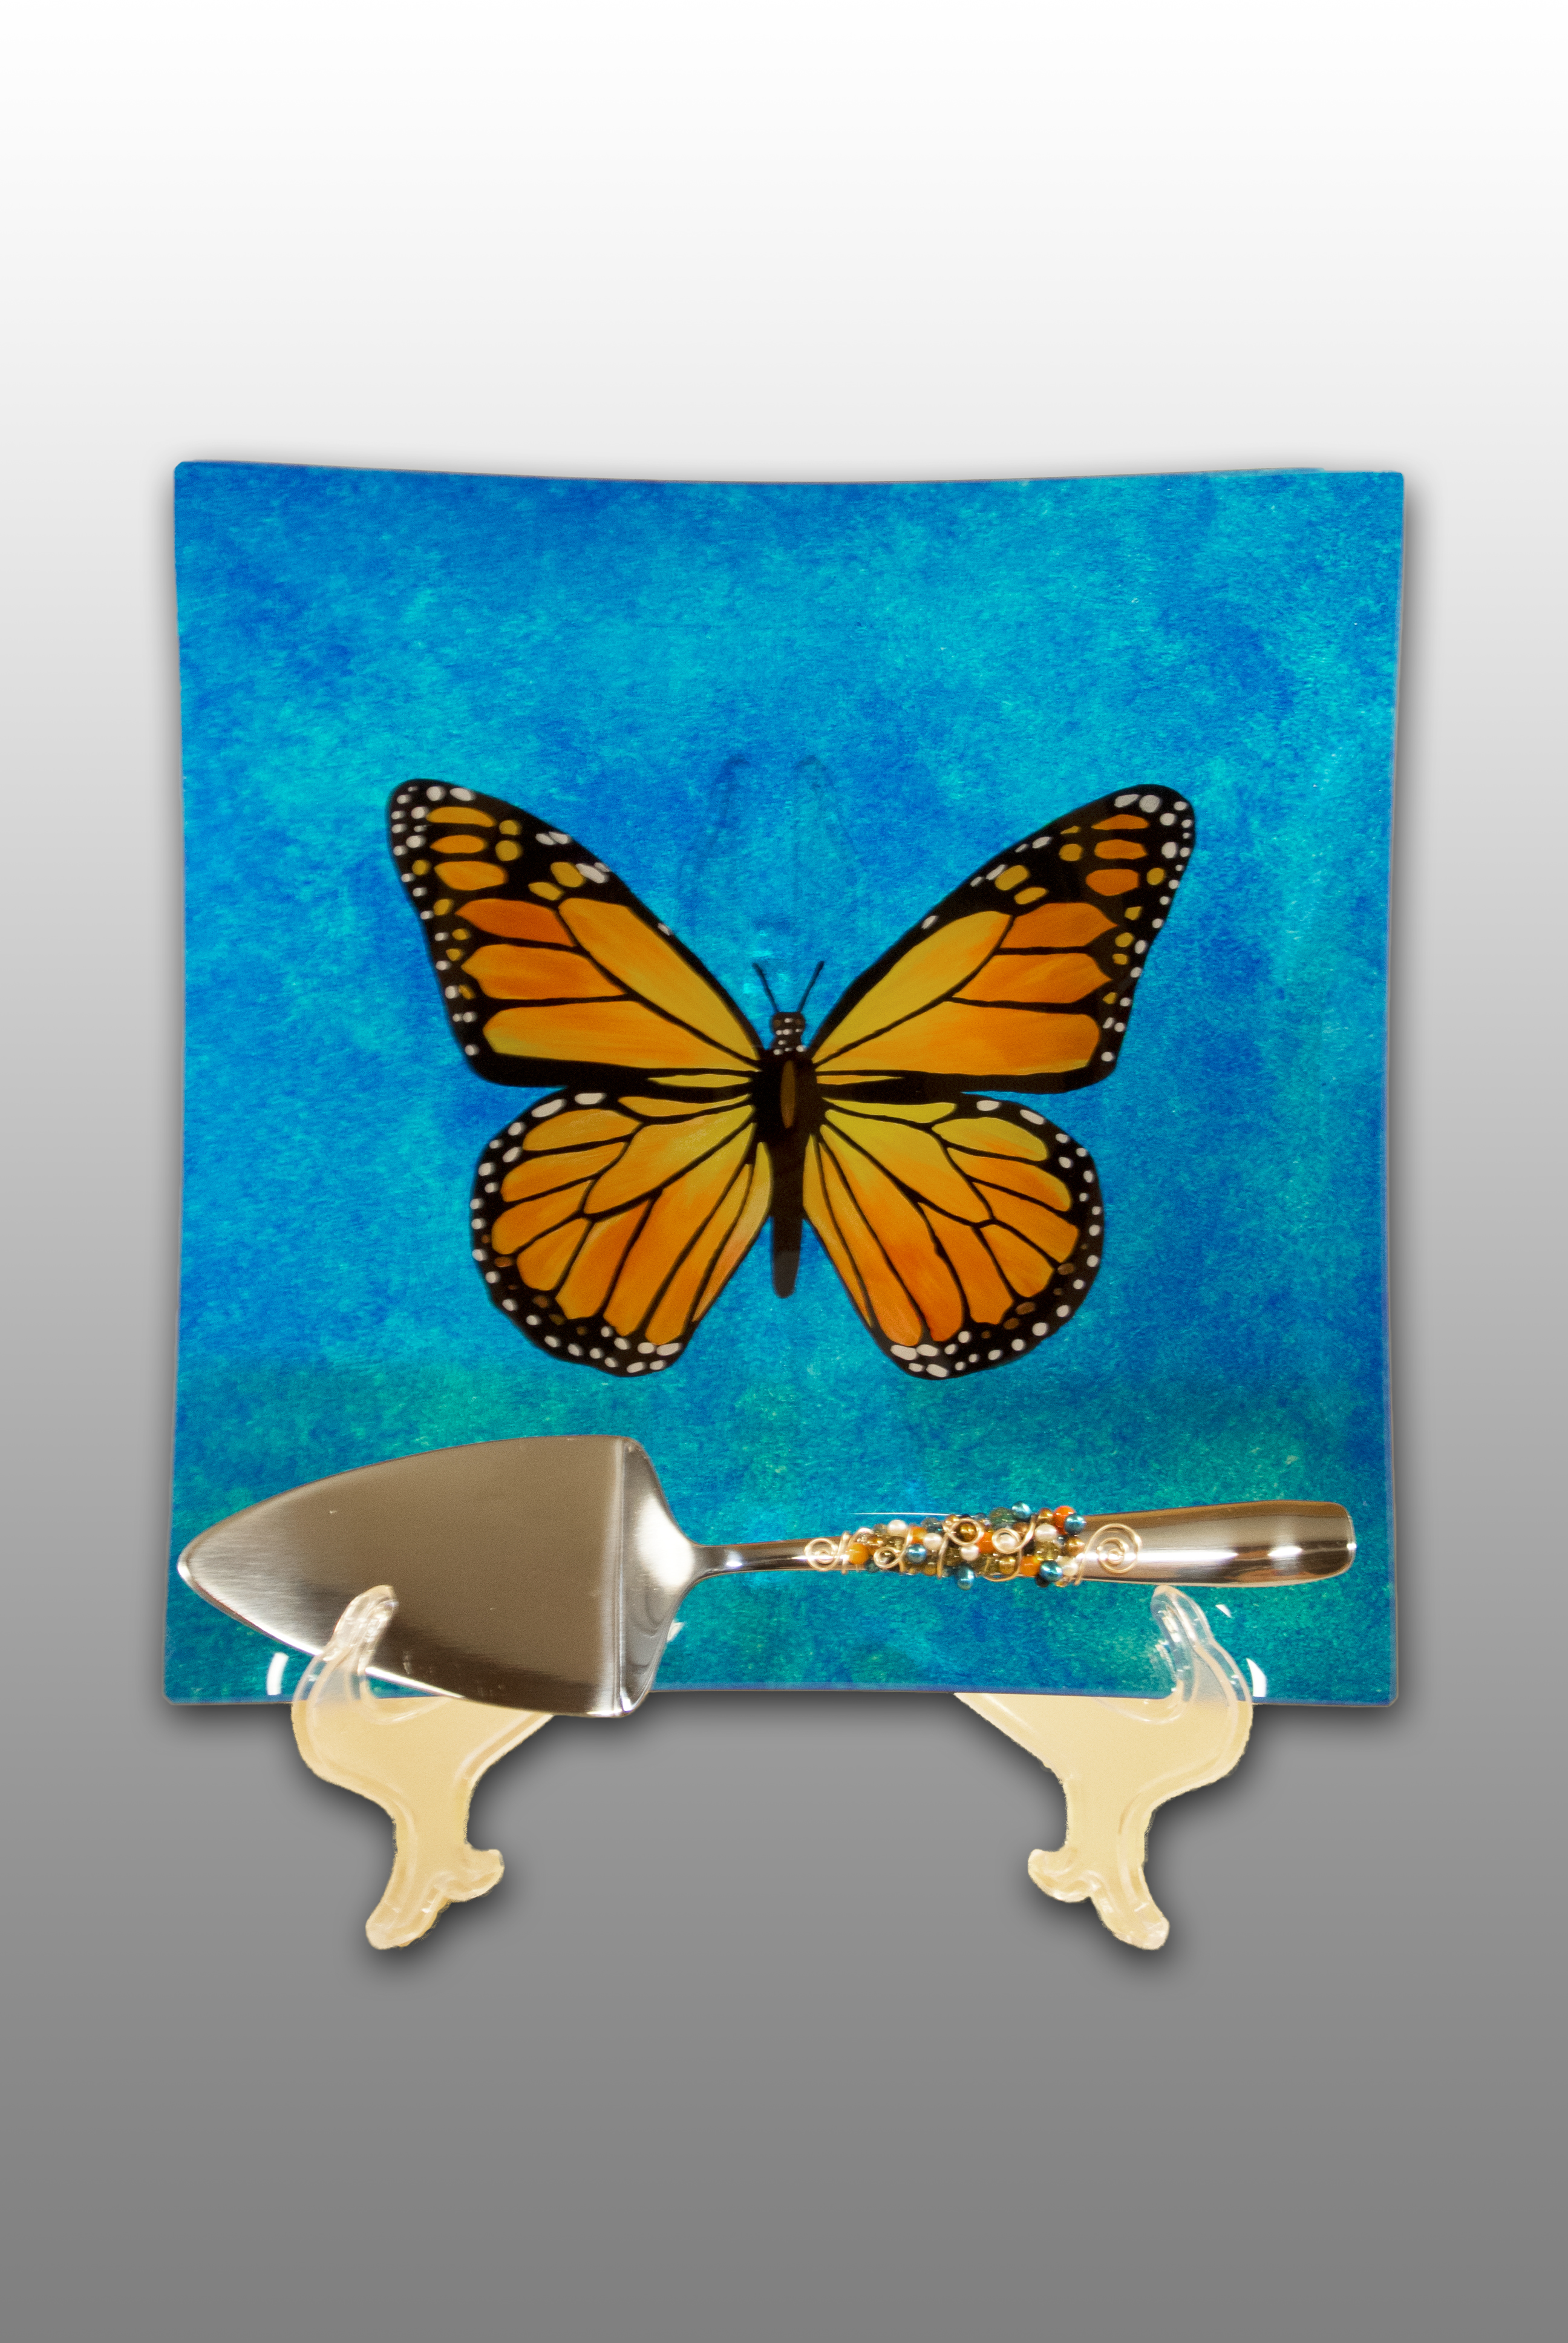 Butterfly Plate and Cake Server